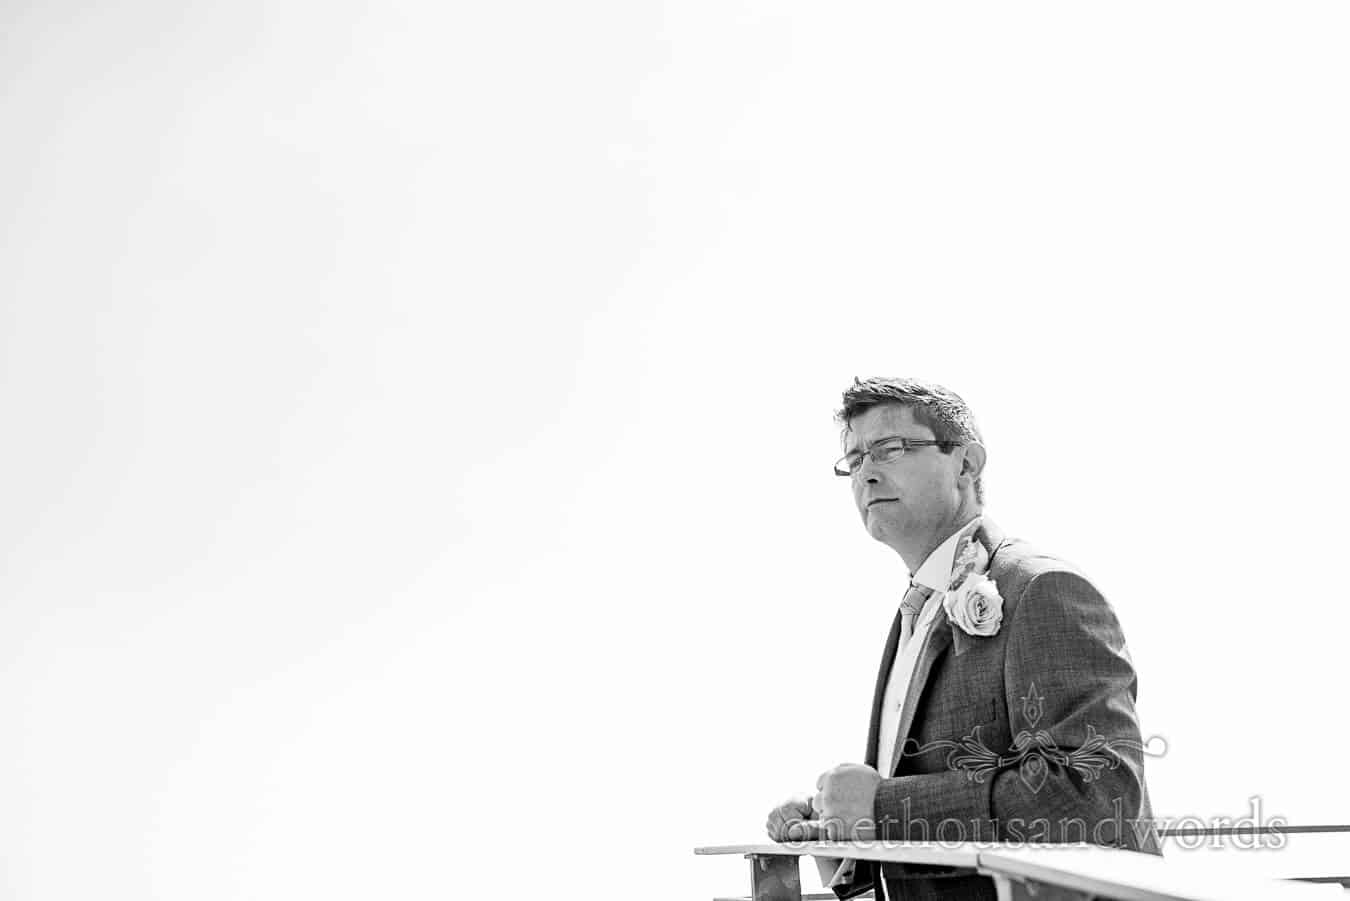 Black and white photograph of groom at wedding looking over sea